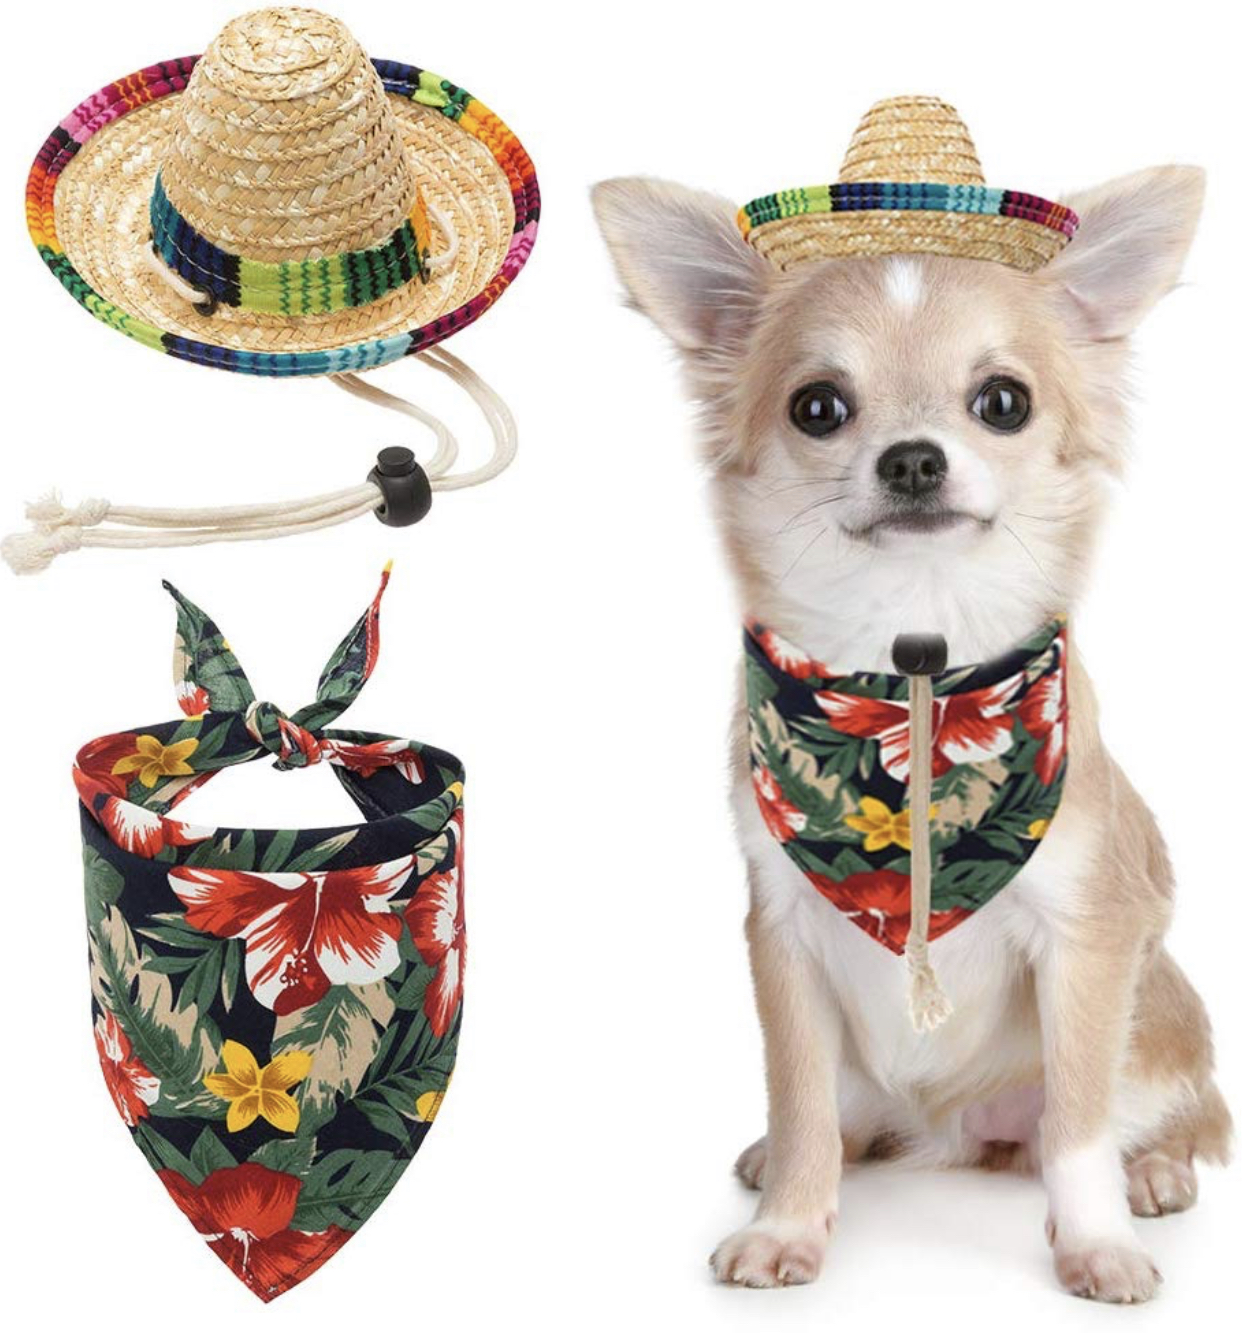 Chihuahua hats - The Cutest hats for Chihuahuas 26